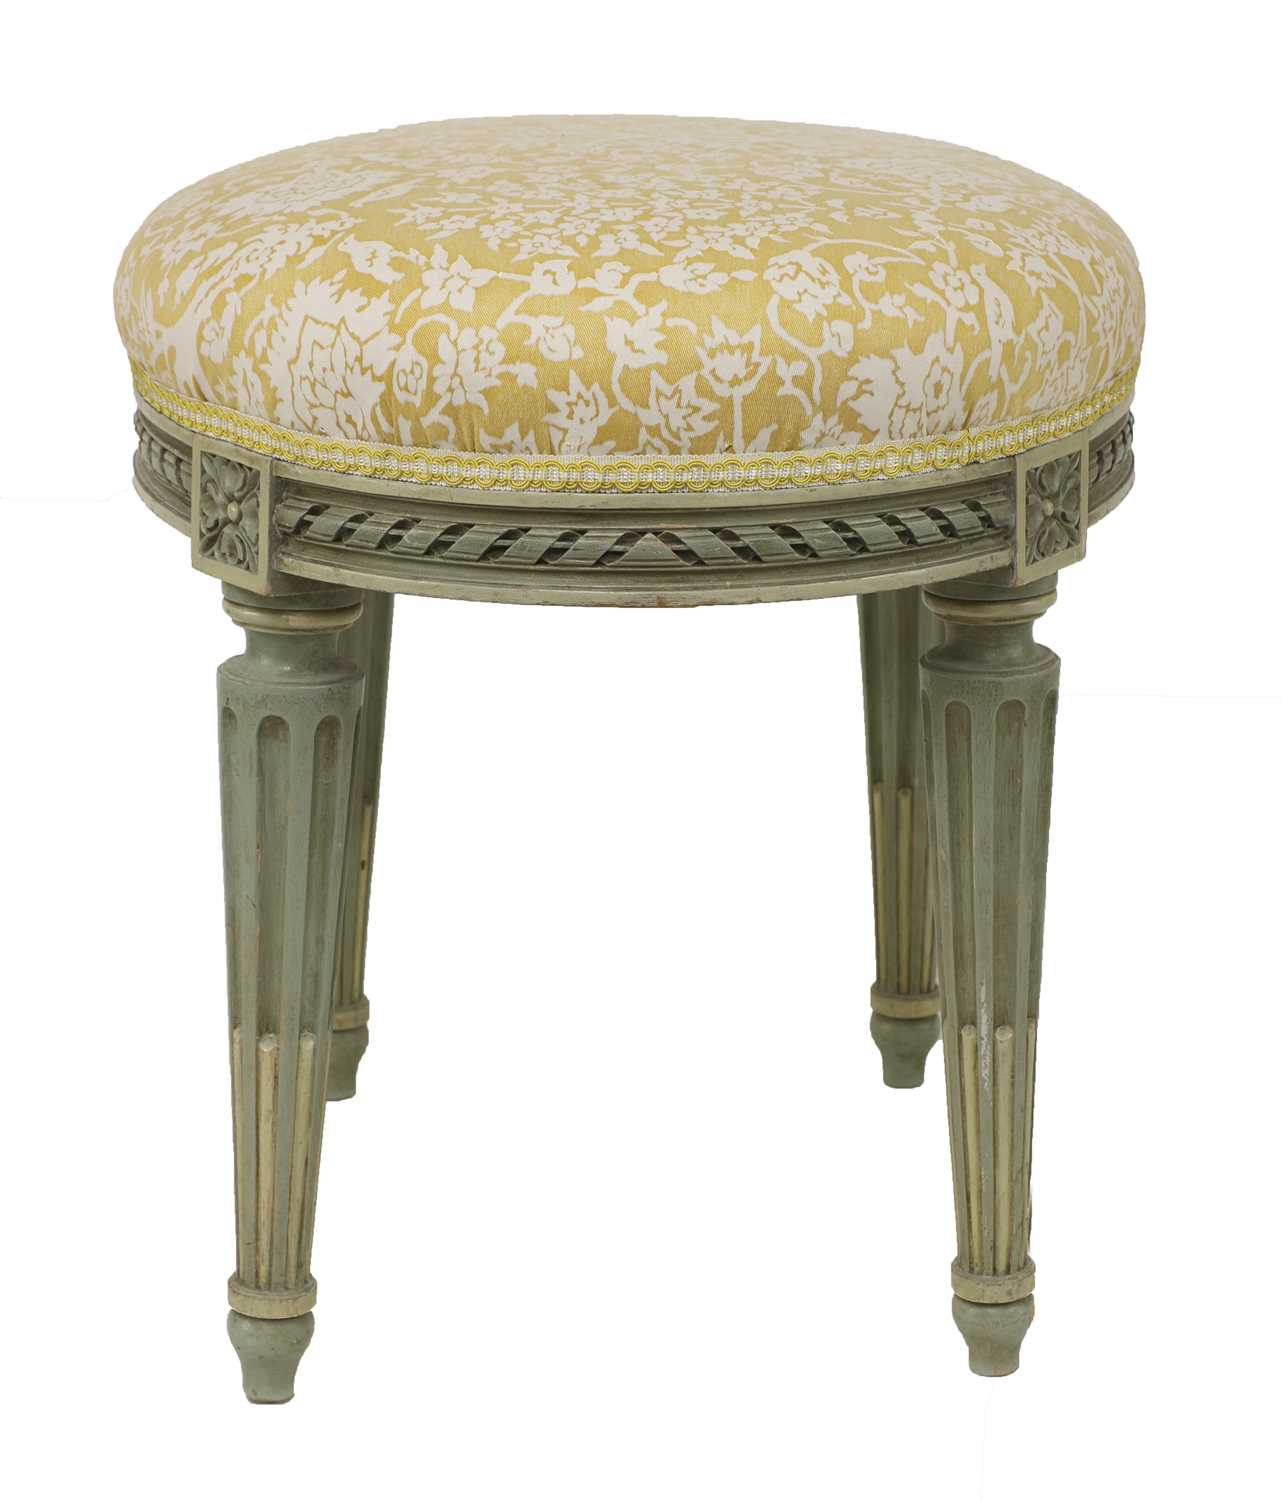 Lot 30 - A small French Louis XVI-style painted stool